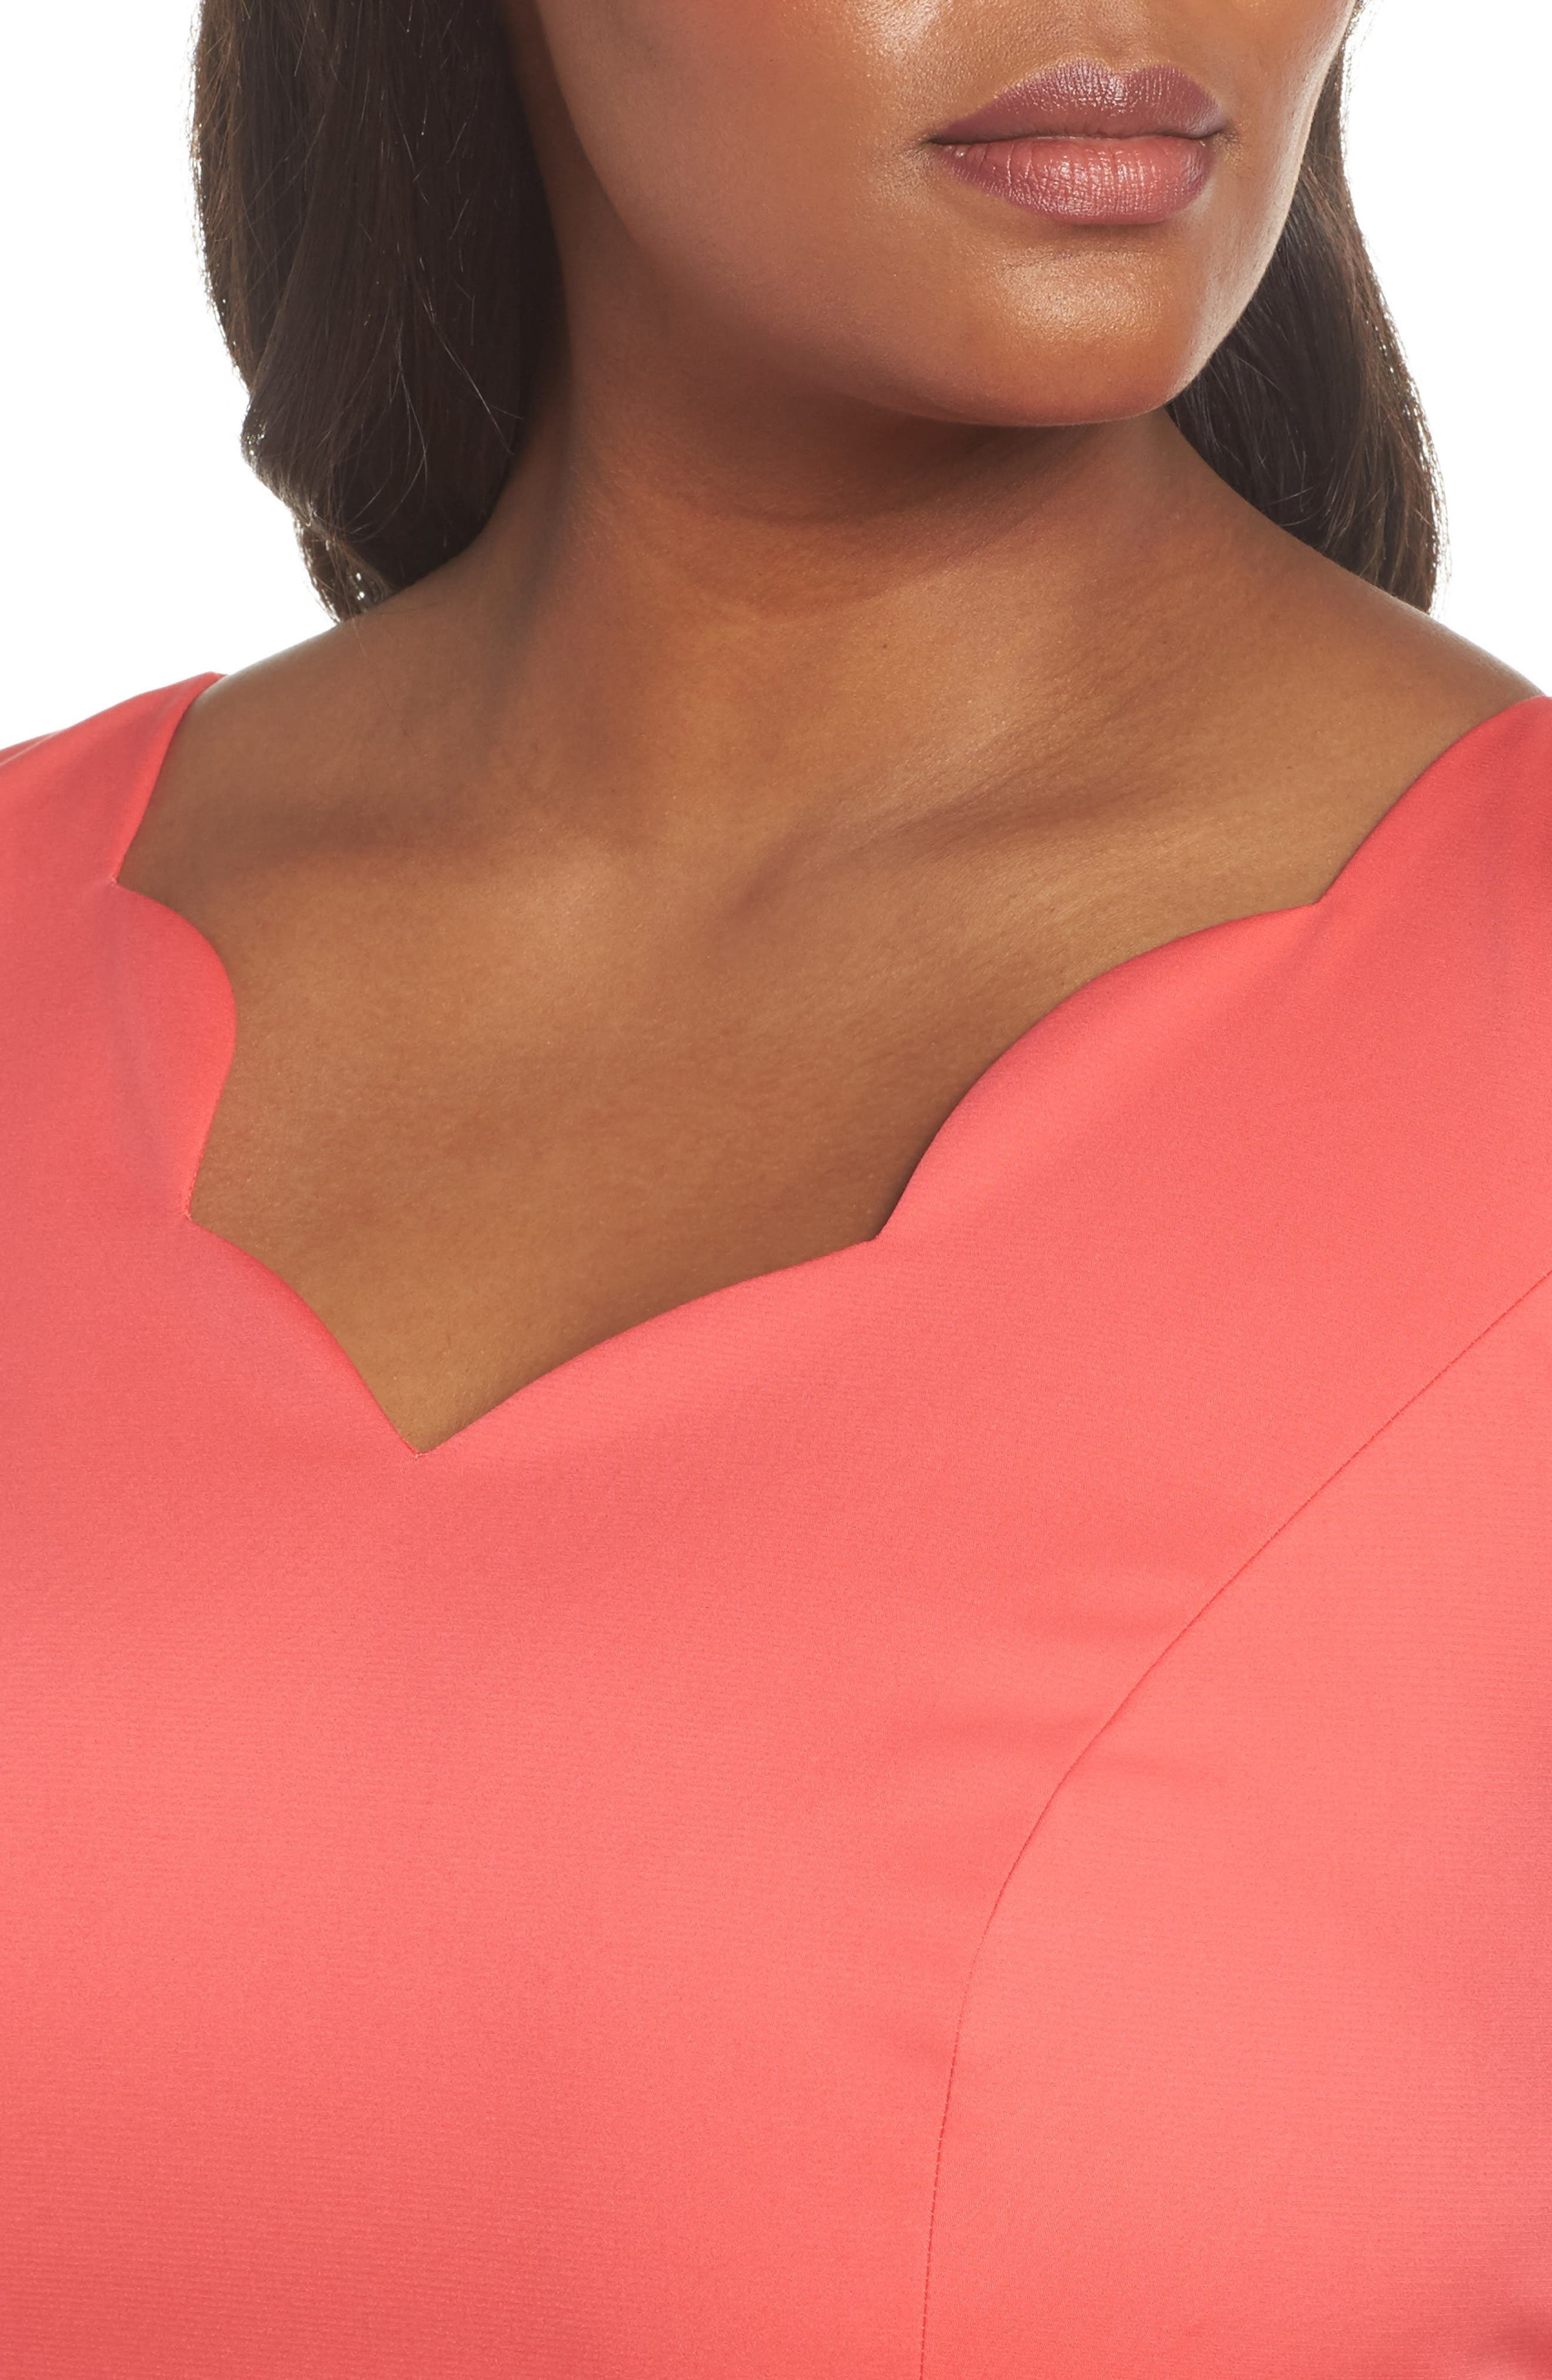 Scalloped A-Line Dress,                             Alternate thumbnail 4, color,                             Strawberry Pink